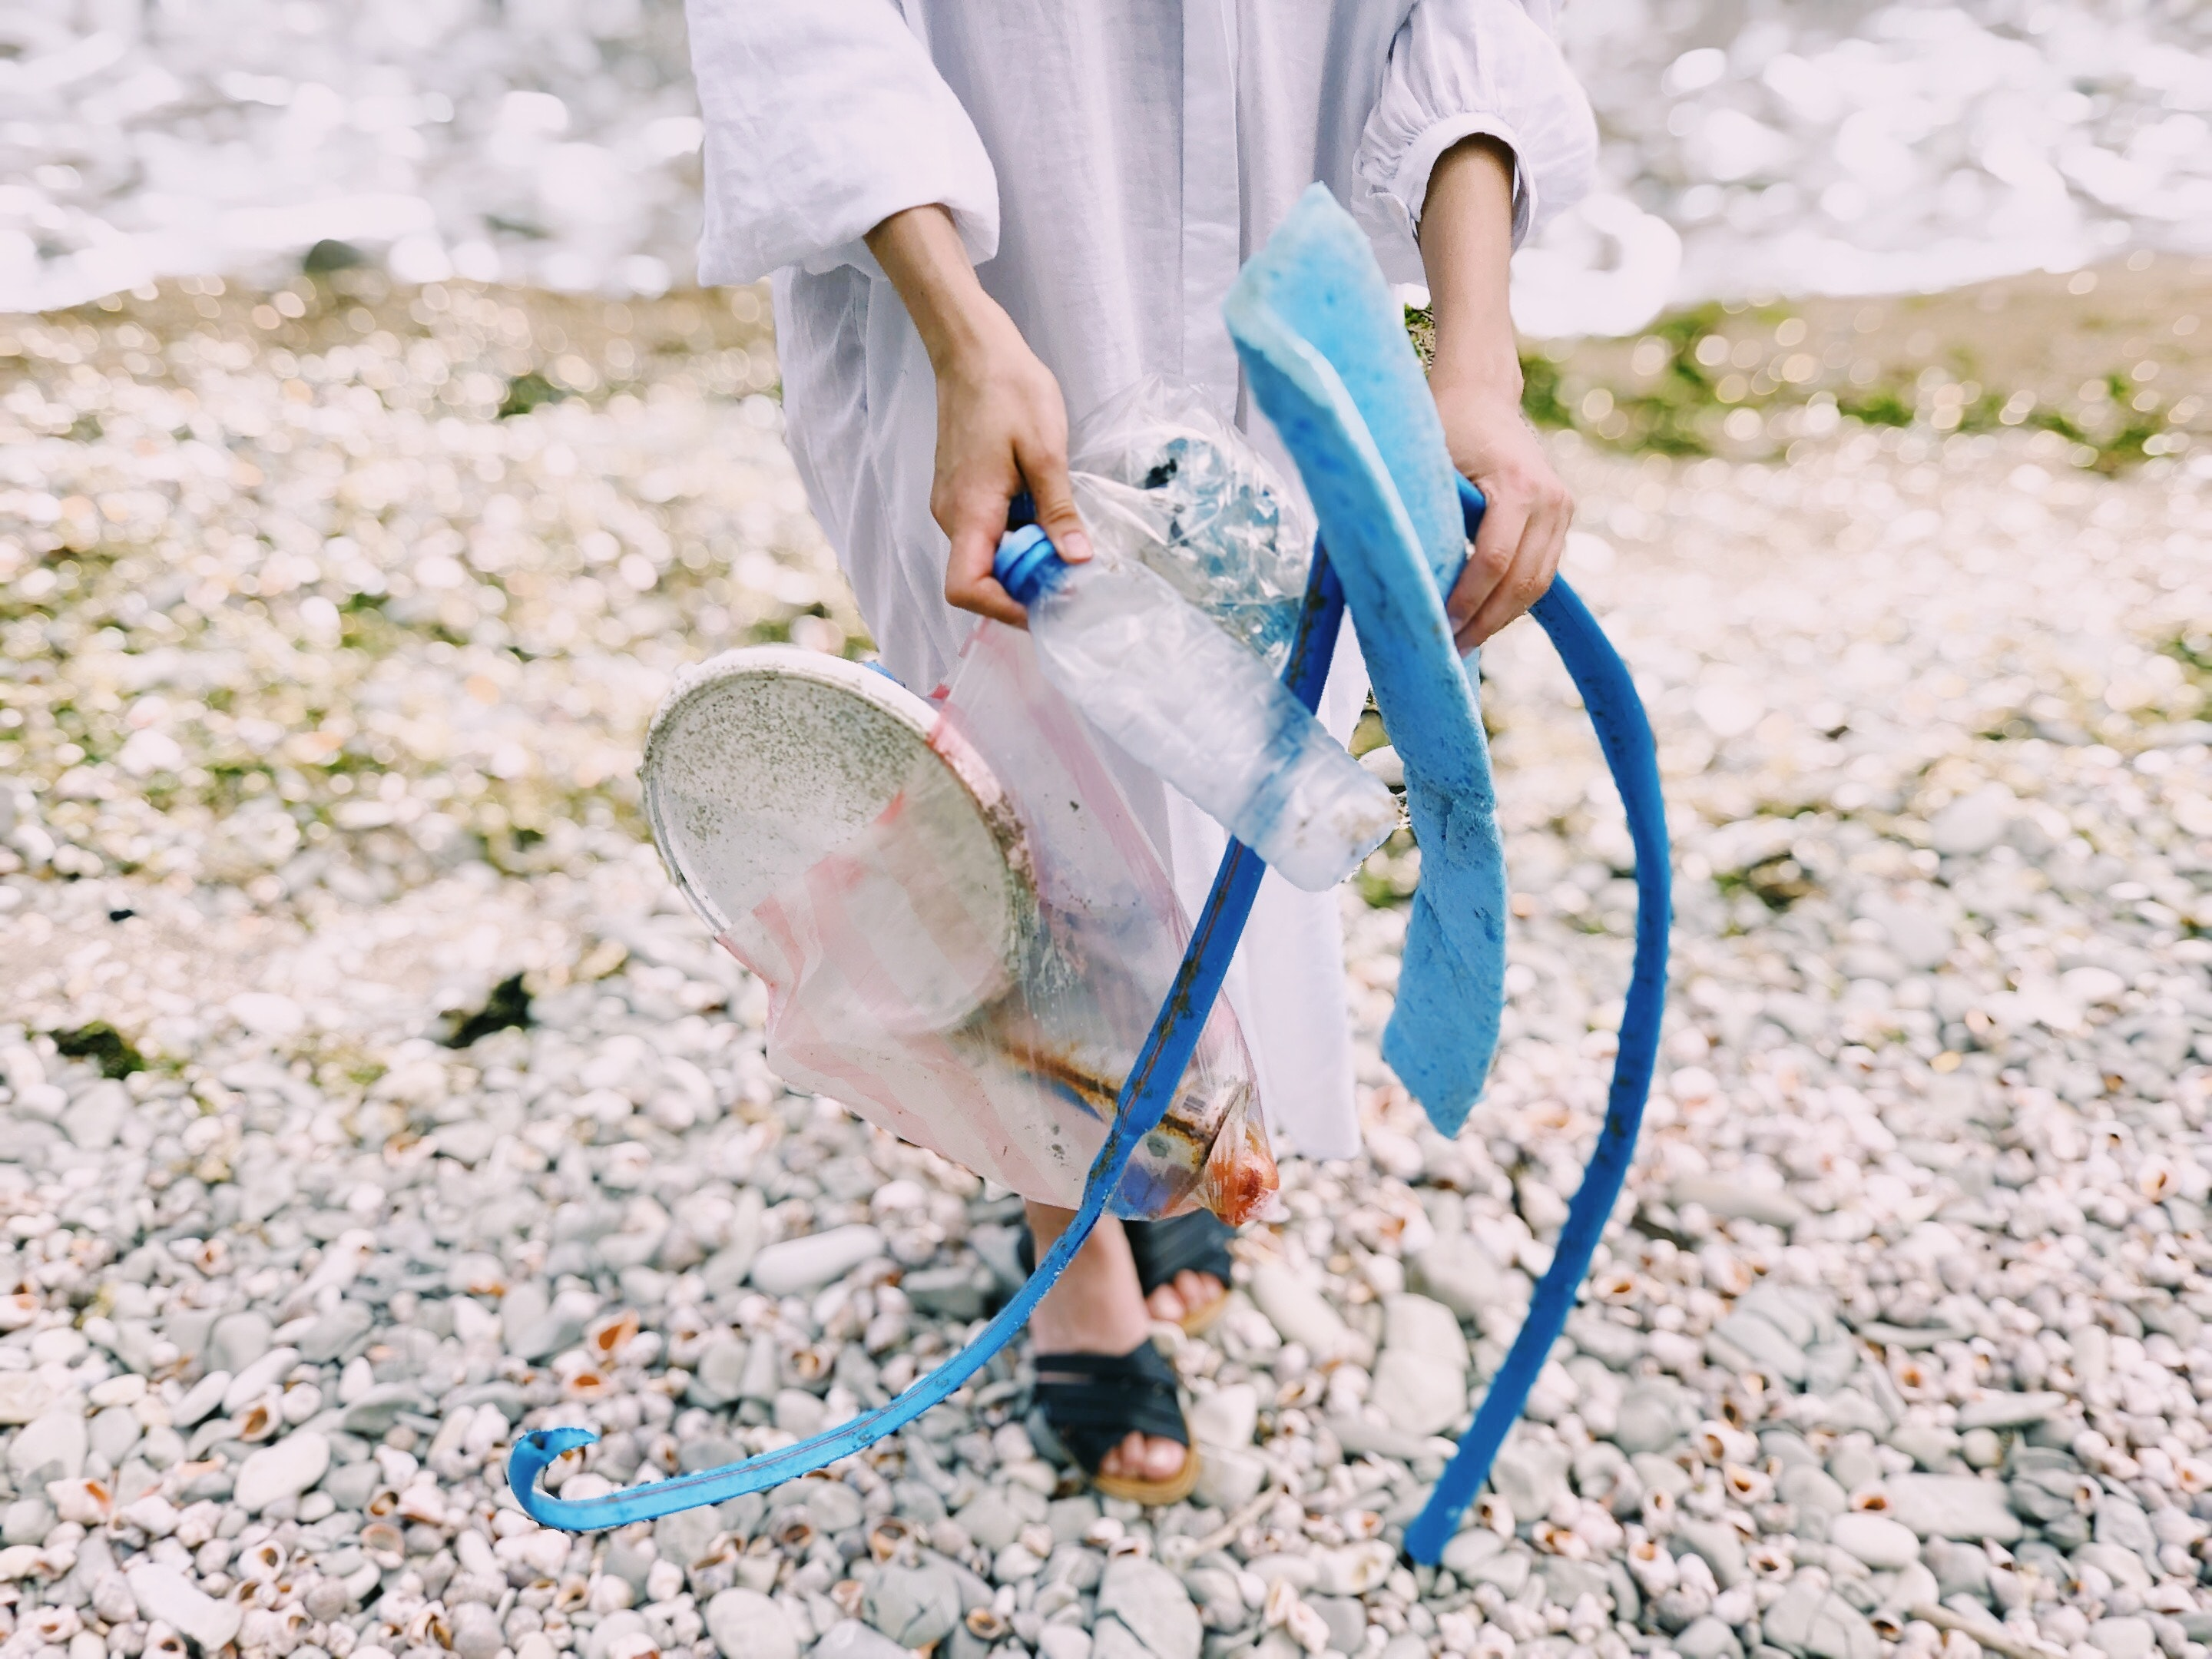 Woman picking up plastics at the beach © Daria Shevtsova / Pexels